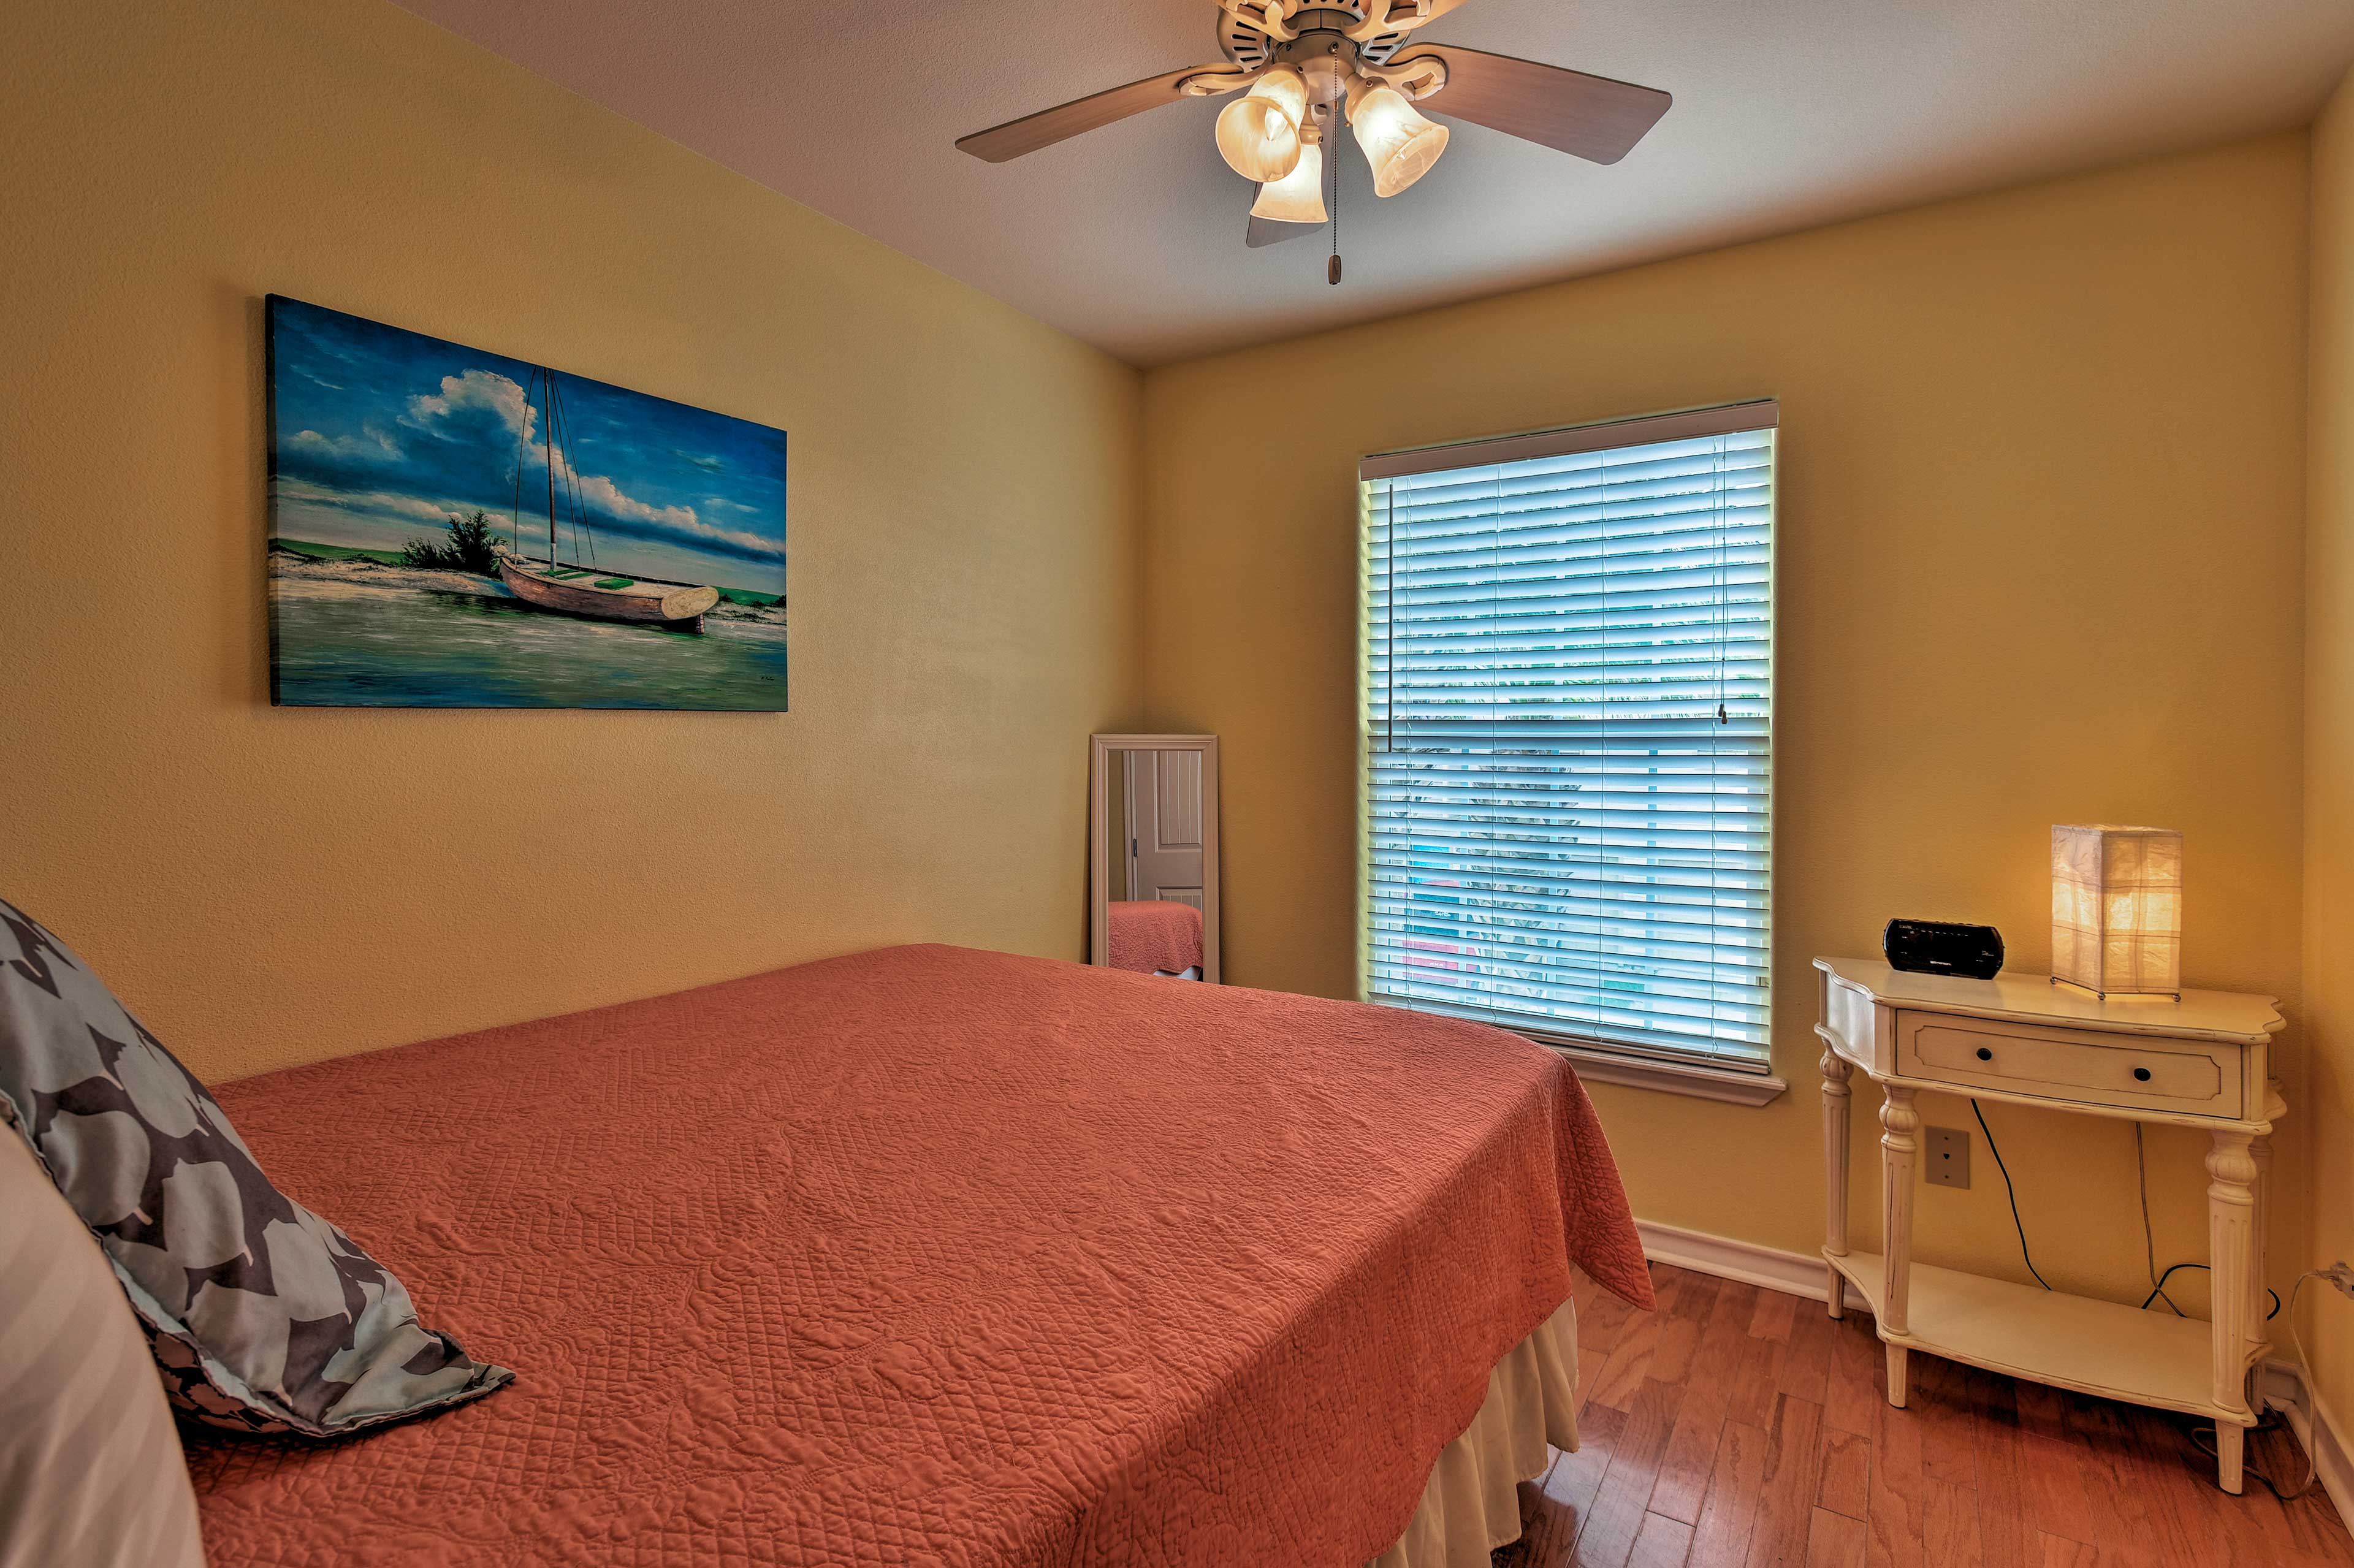 This lovely bedroom sleeps 2 in a queen bed.